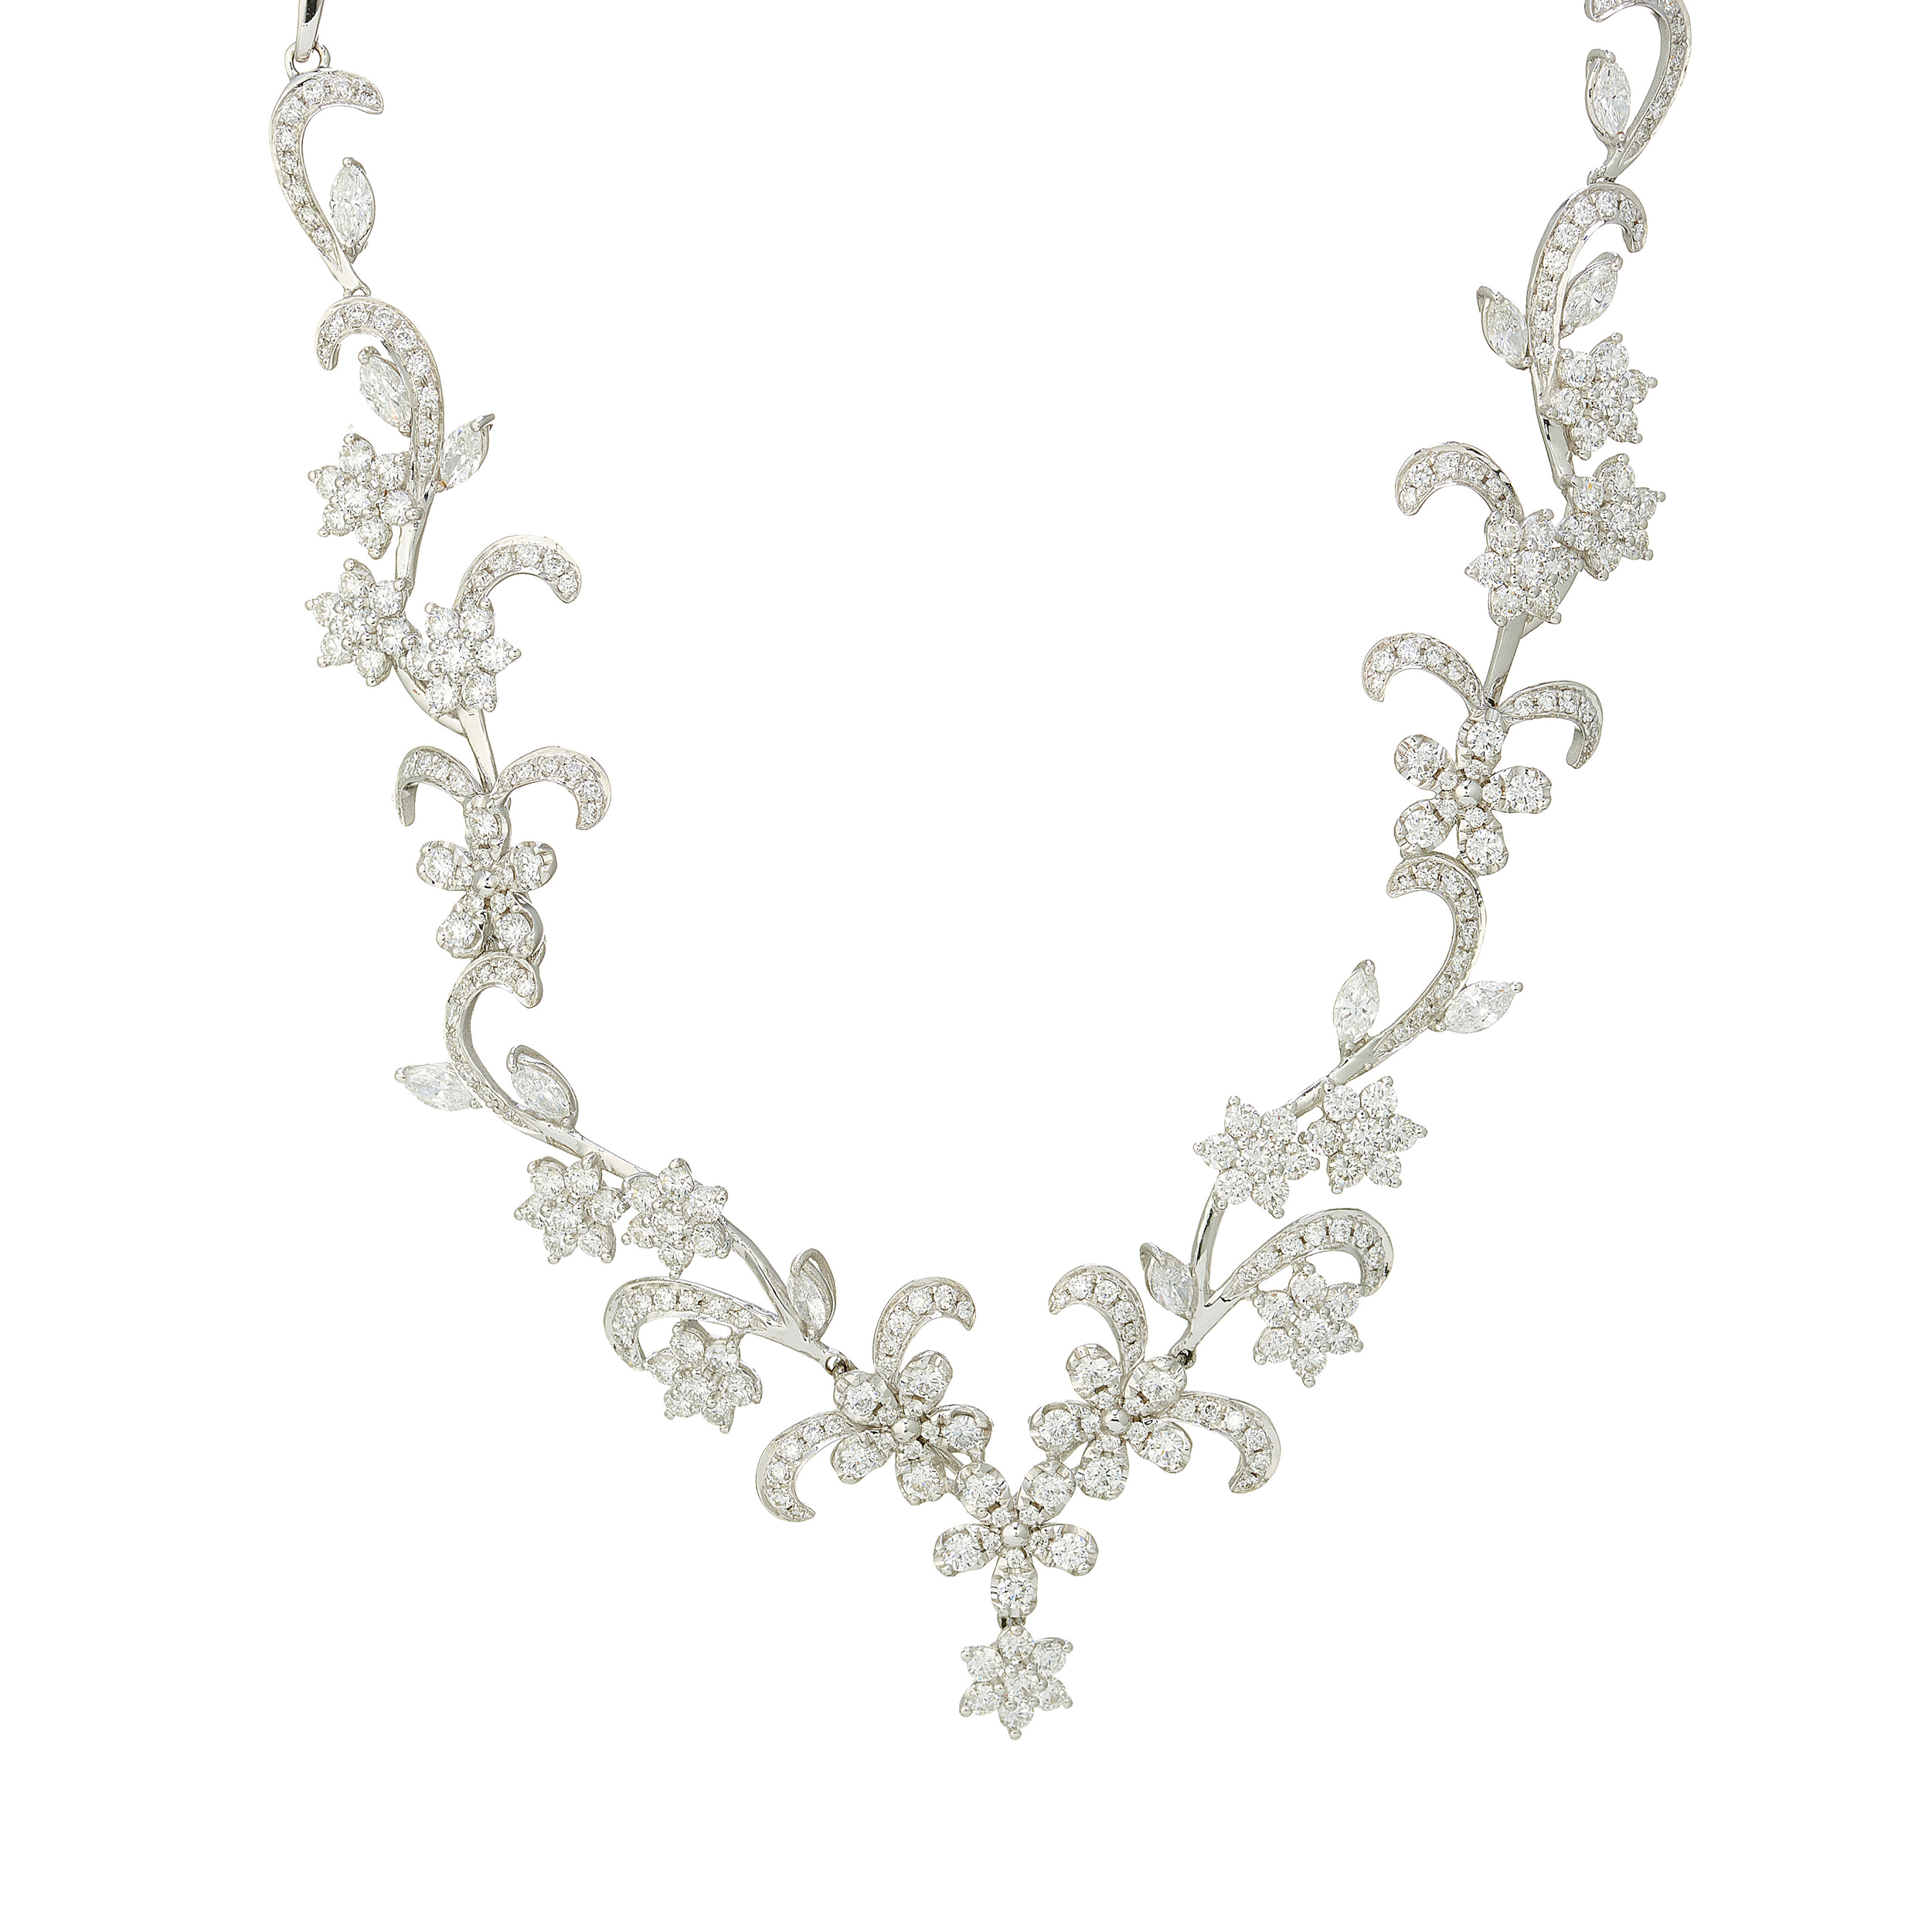 An 18ct gold diamond floral and foliate necklace